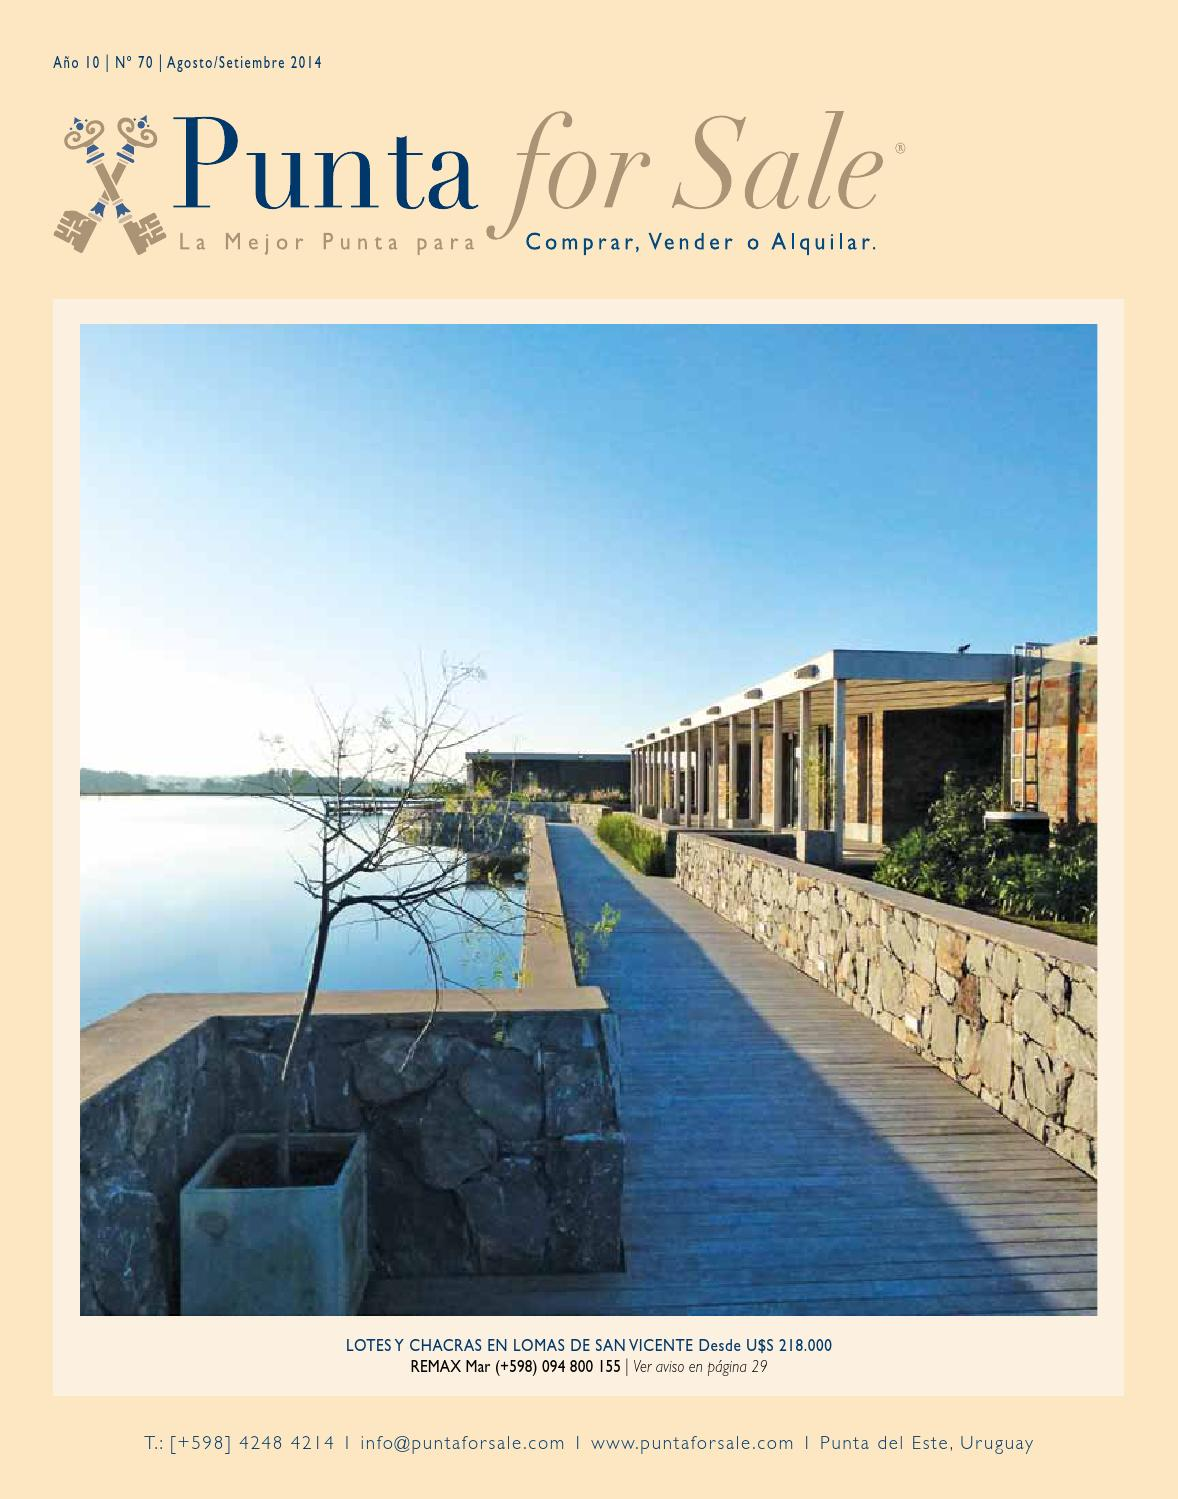 Revista de Real Estate Punta For Sale, edición Agosto - Setiembre 2014